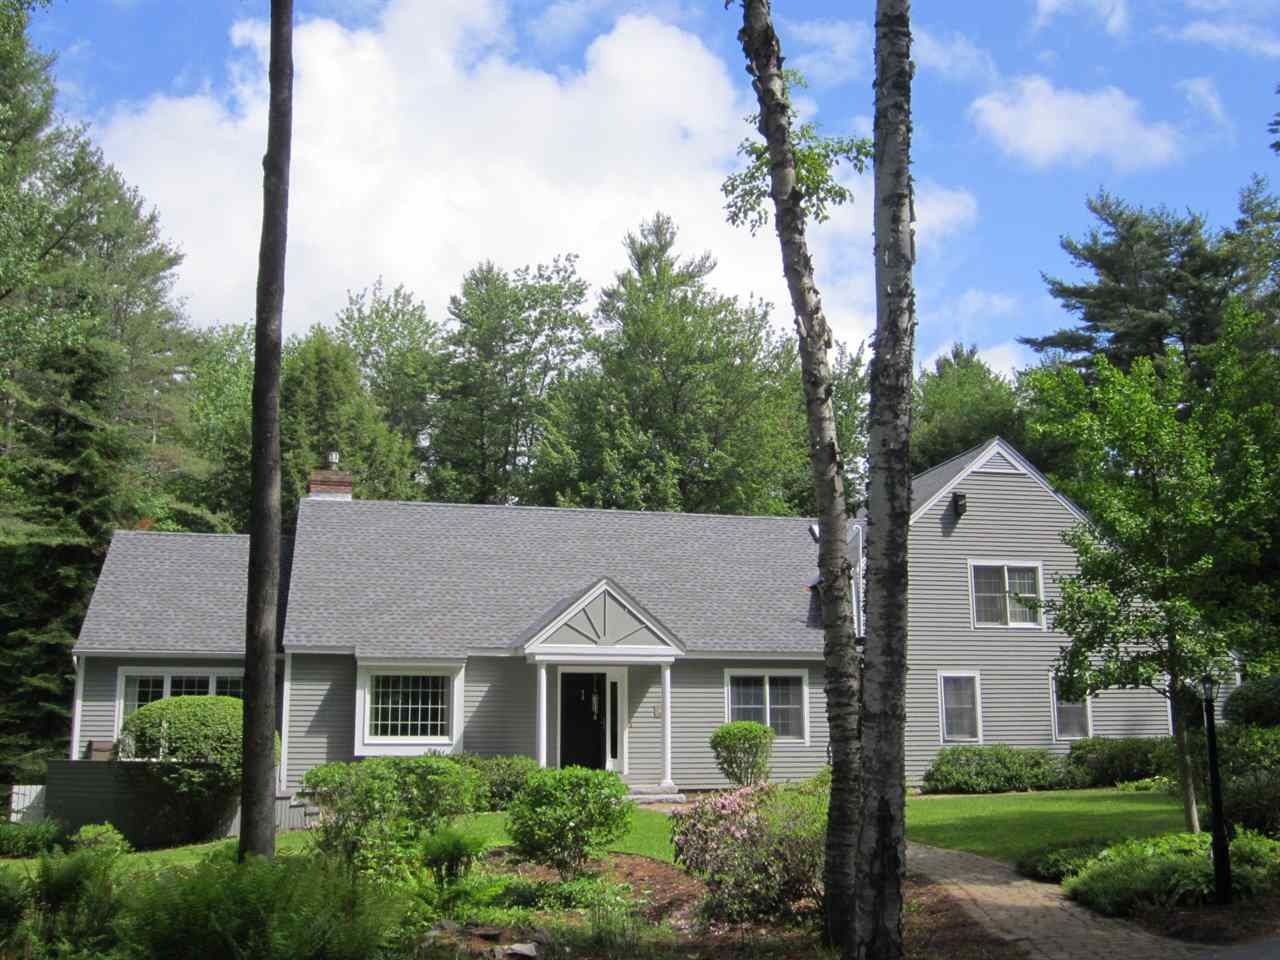 MLS 4750883: 368 Forest Acres Road, New London NH